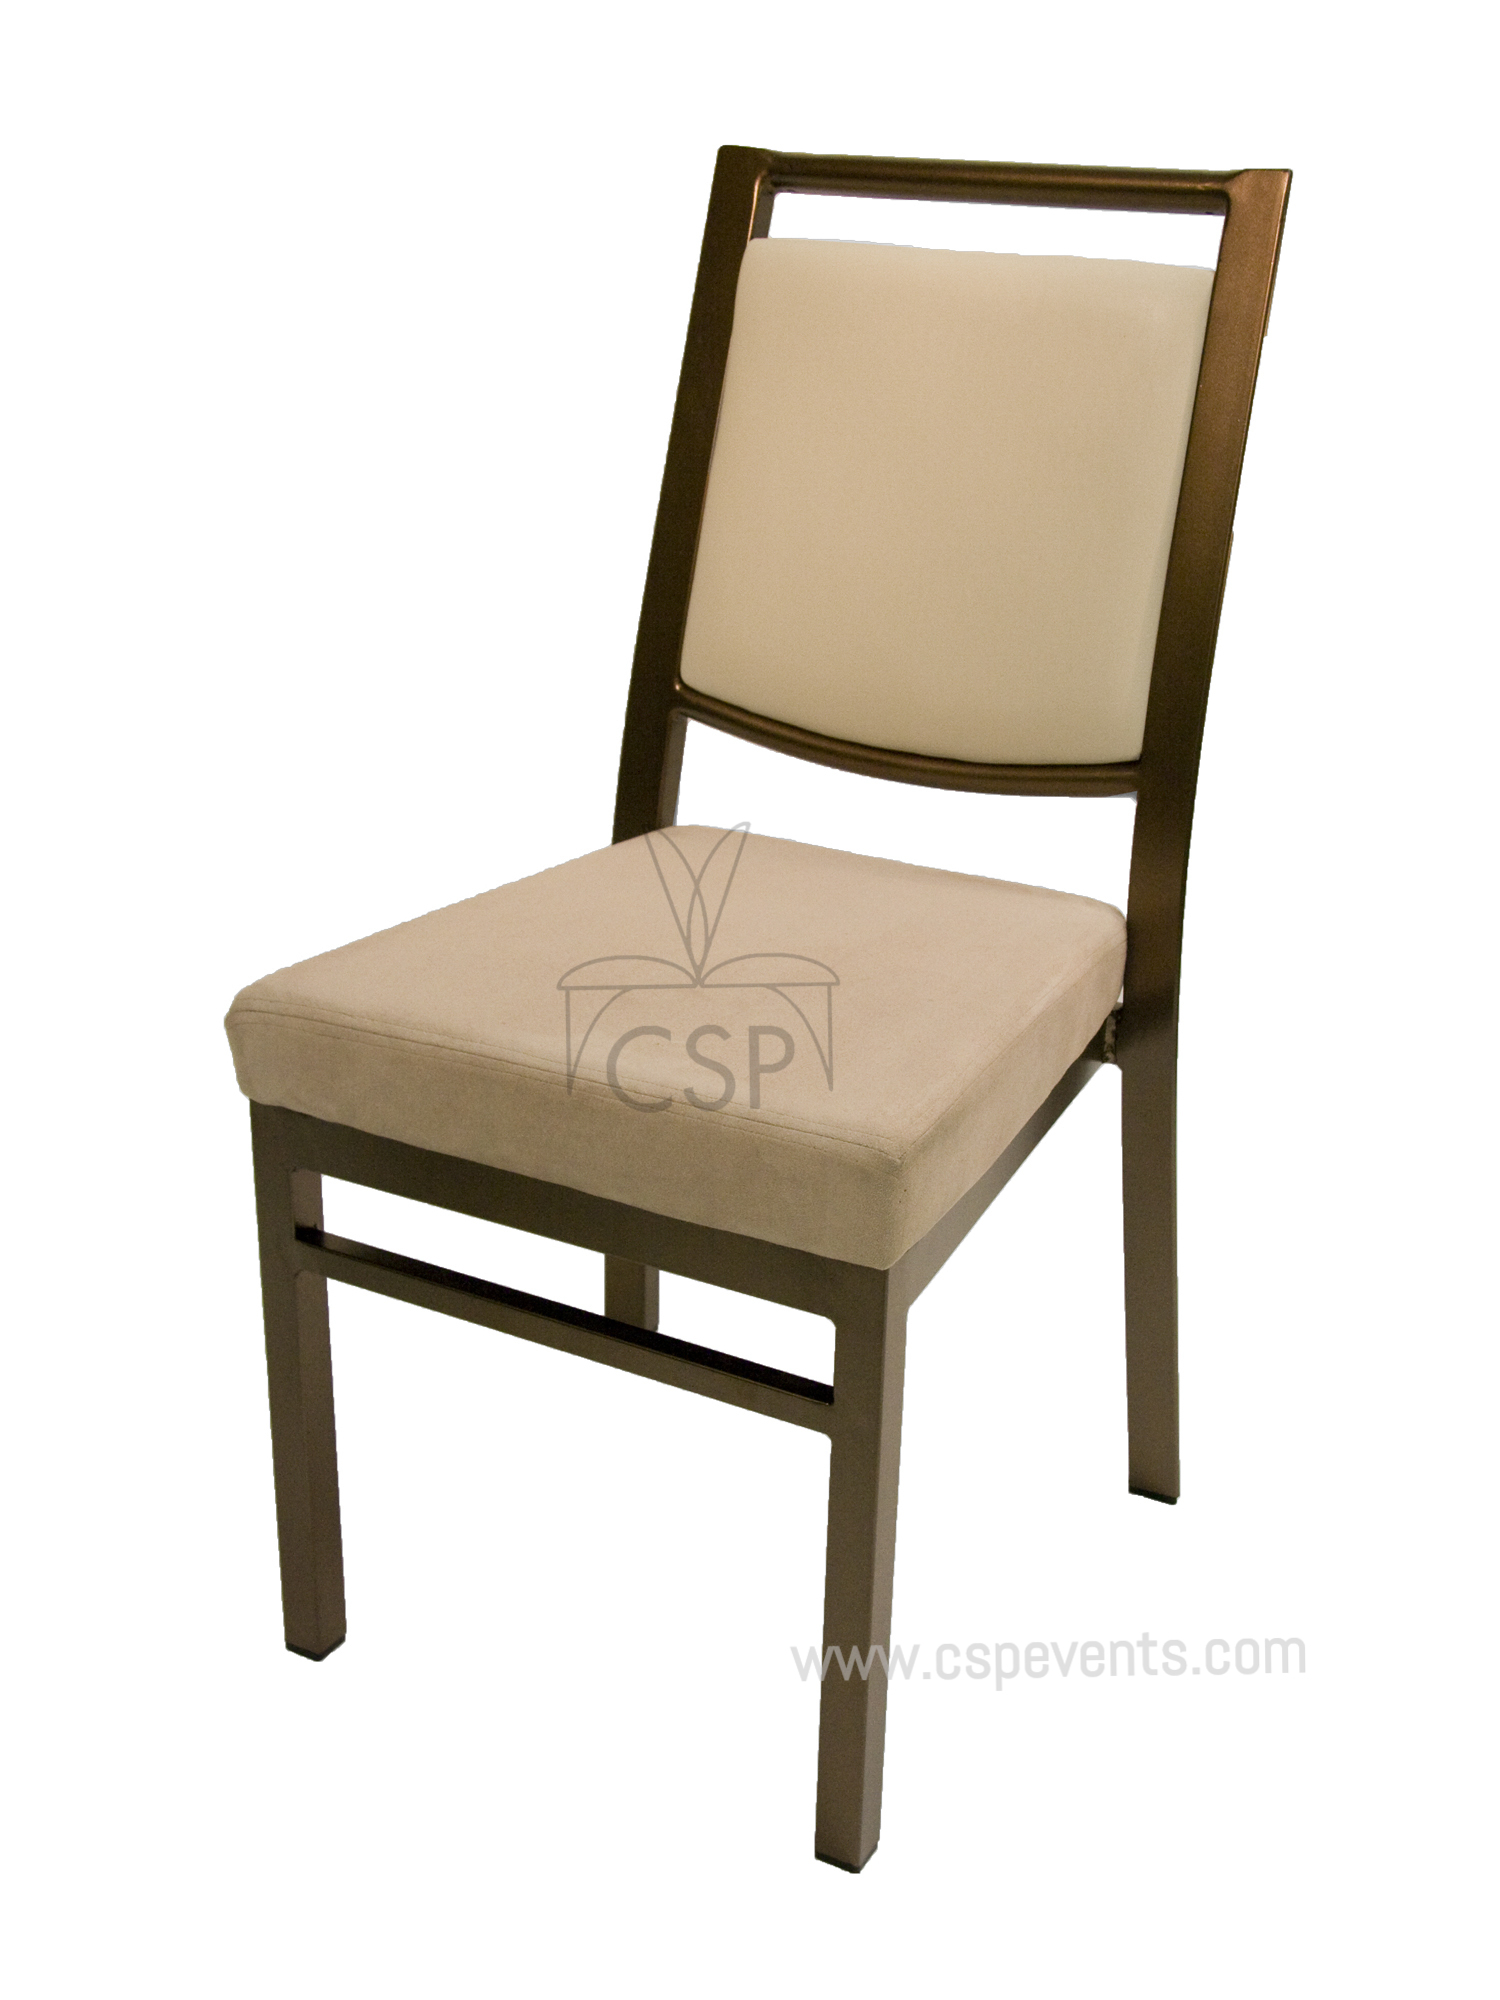 chairs series banquet product online household store shopping chair category